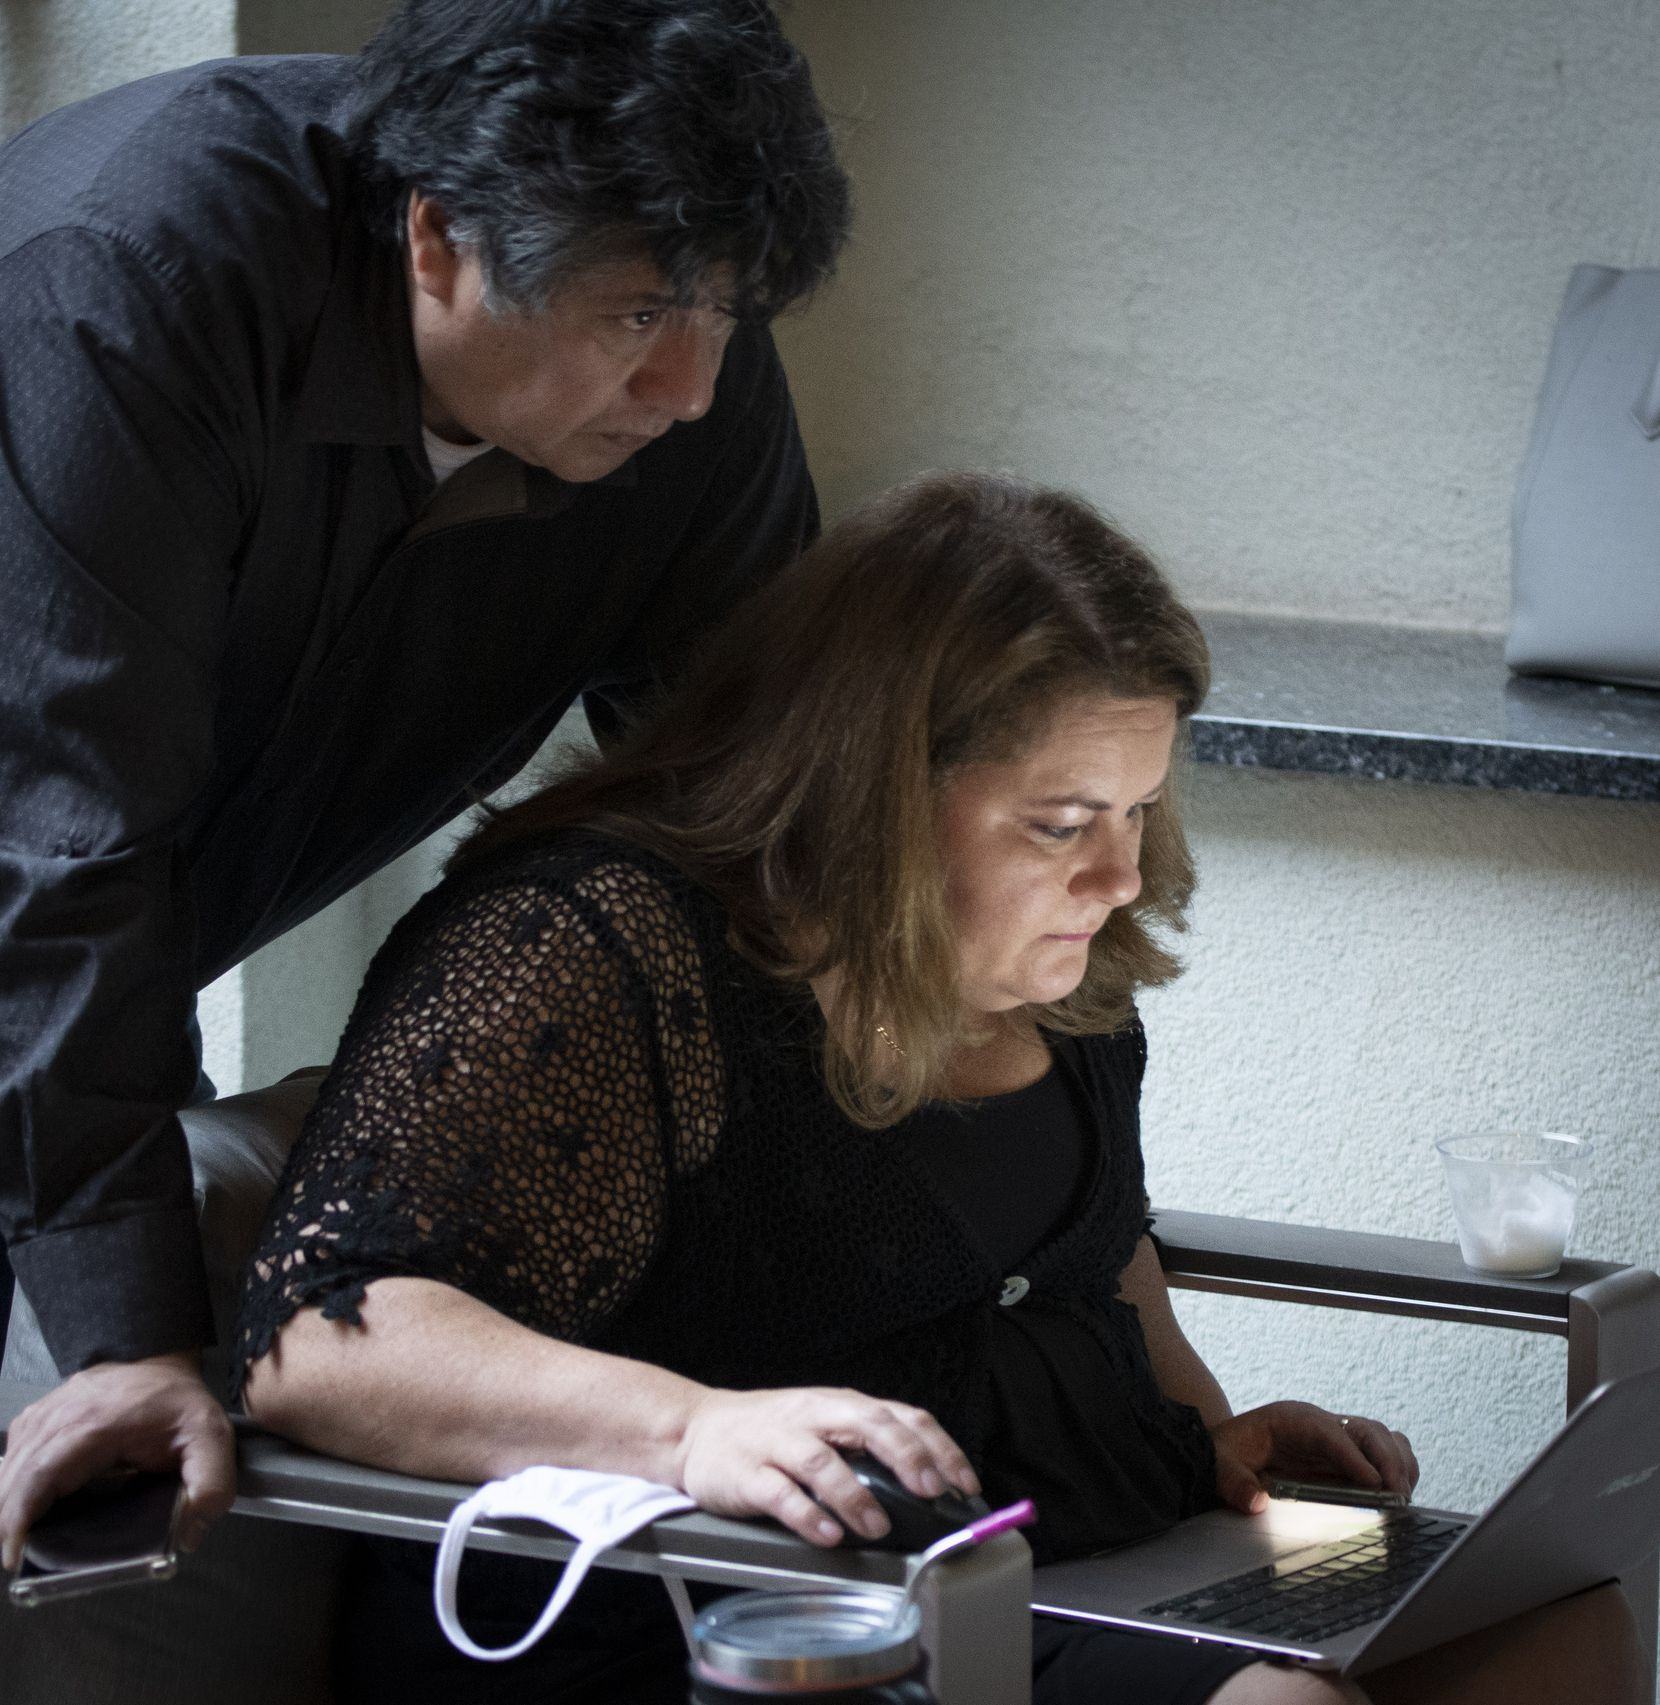 Democrat Jana Sanchez looks at election returns in the District 6 Special election while her friend Juan Saenz, looks over her shoulder Saturday May 1, 2021 in Fort Worth, Texas. (Robert W. Hart/Special Contributor)